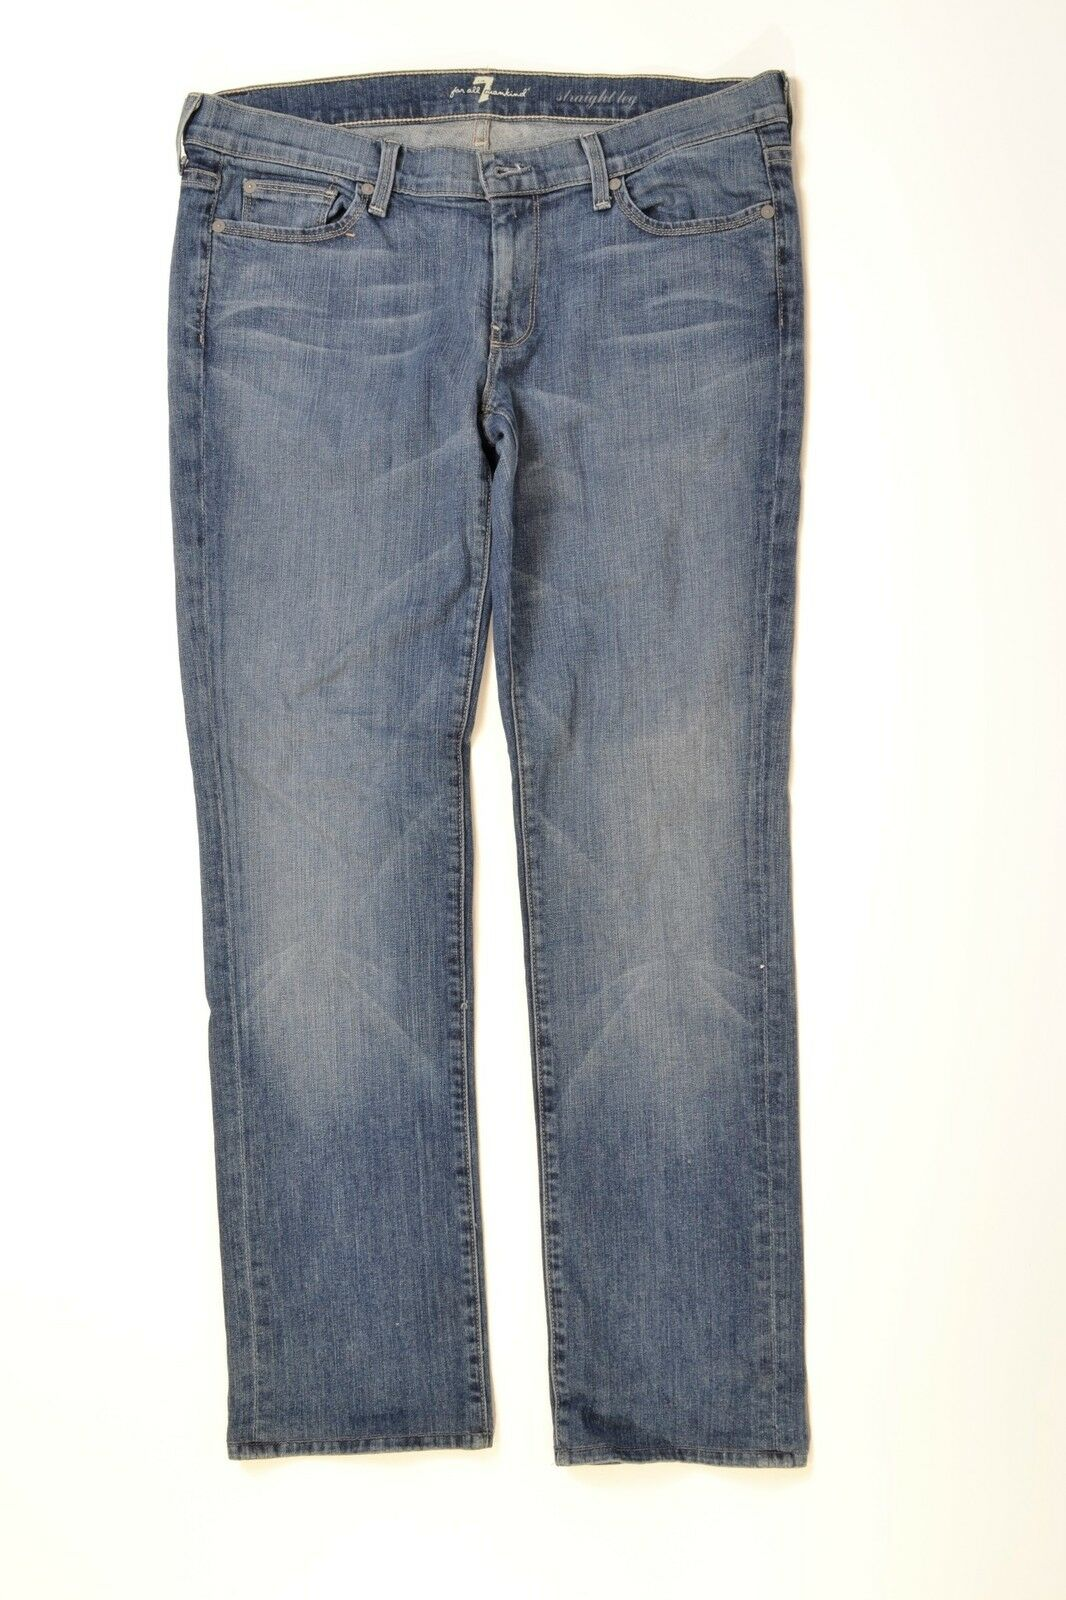 7 For All Mankind Embroidered Rue De Lille Wash Size 30 MRSP